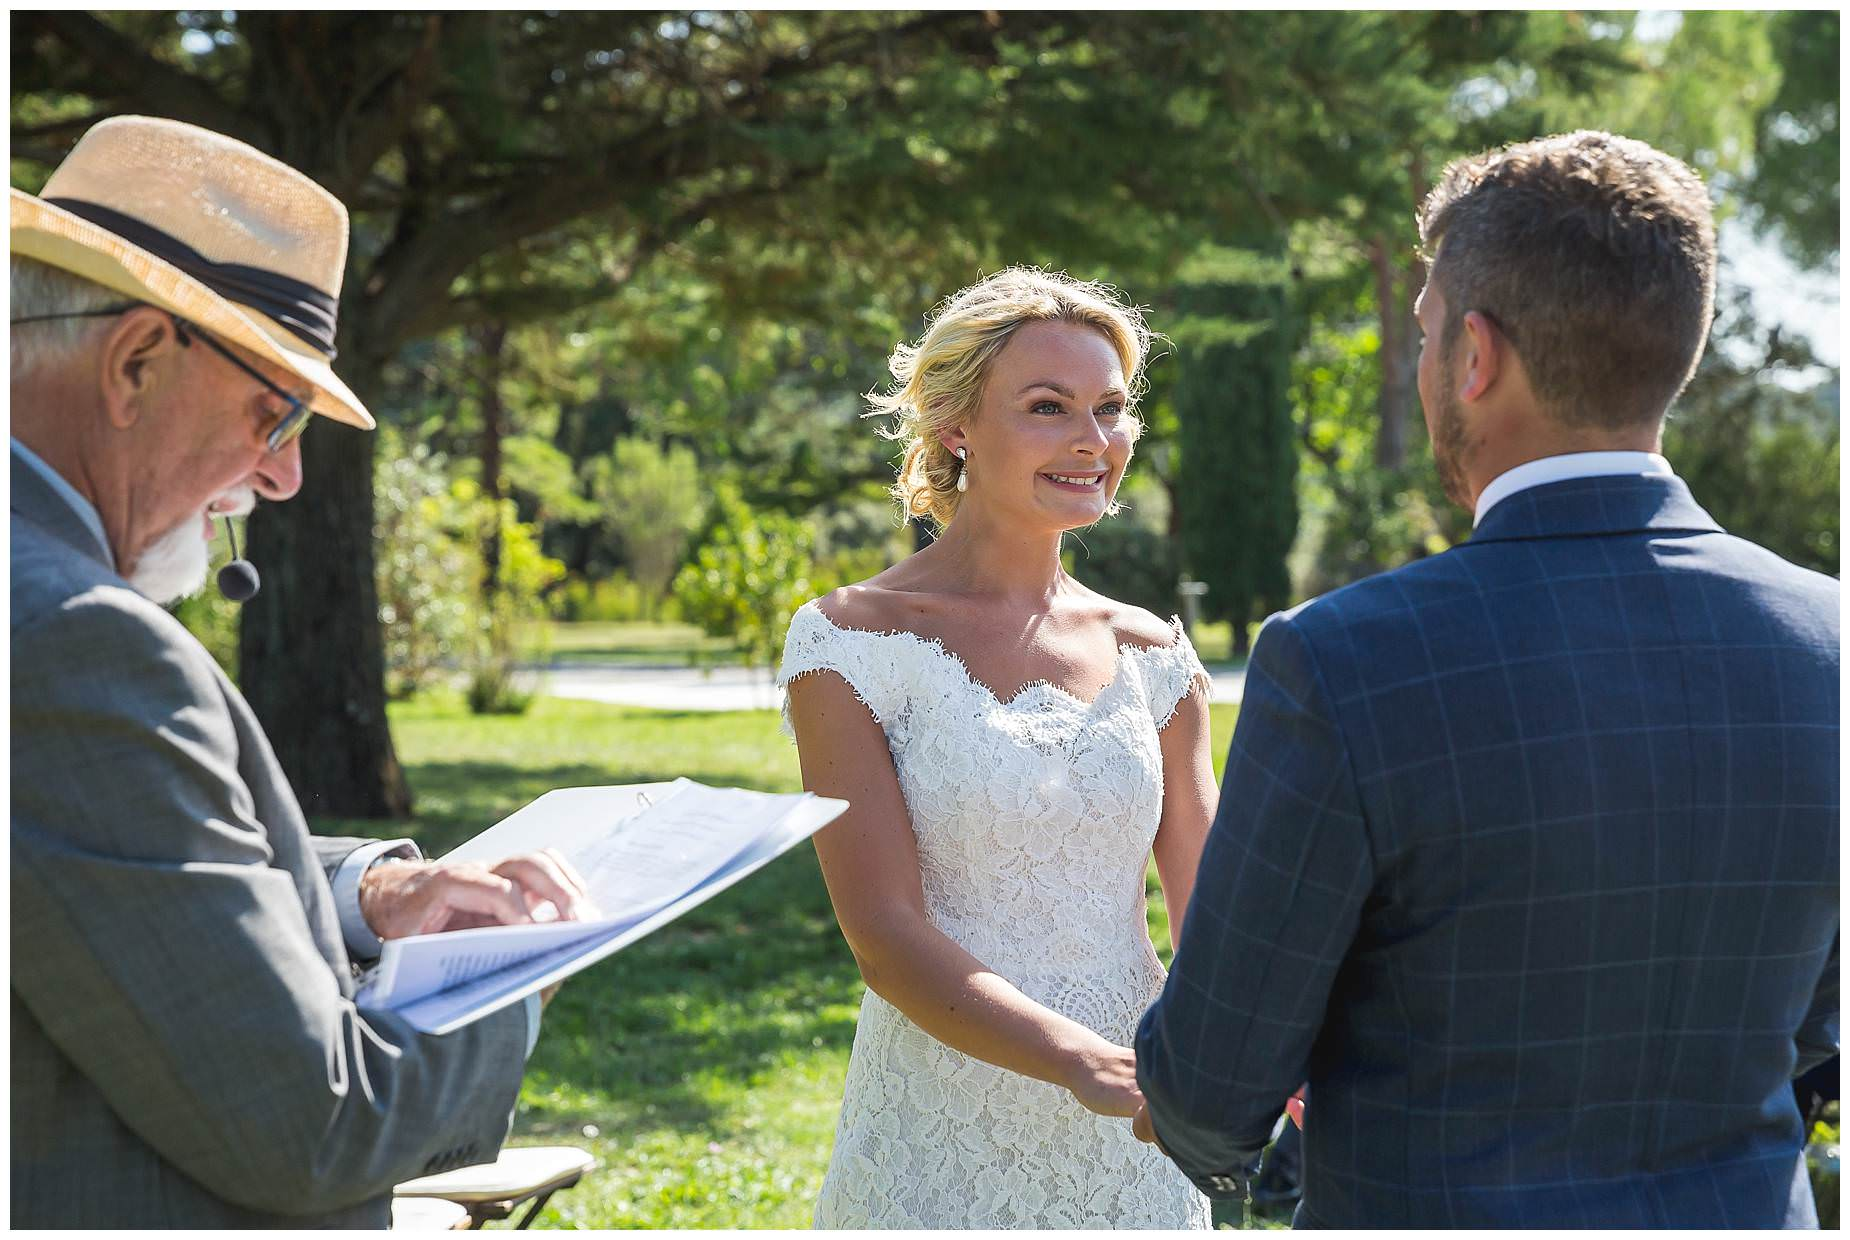 Wedding ceremony at Domaine Saint Germain